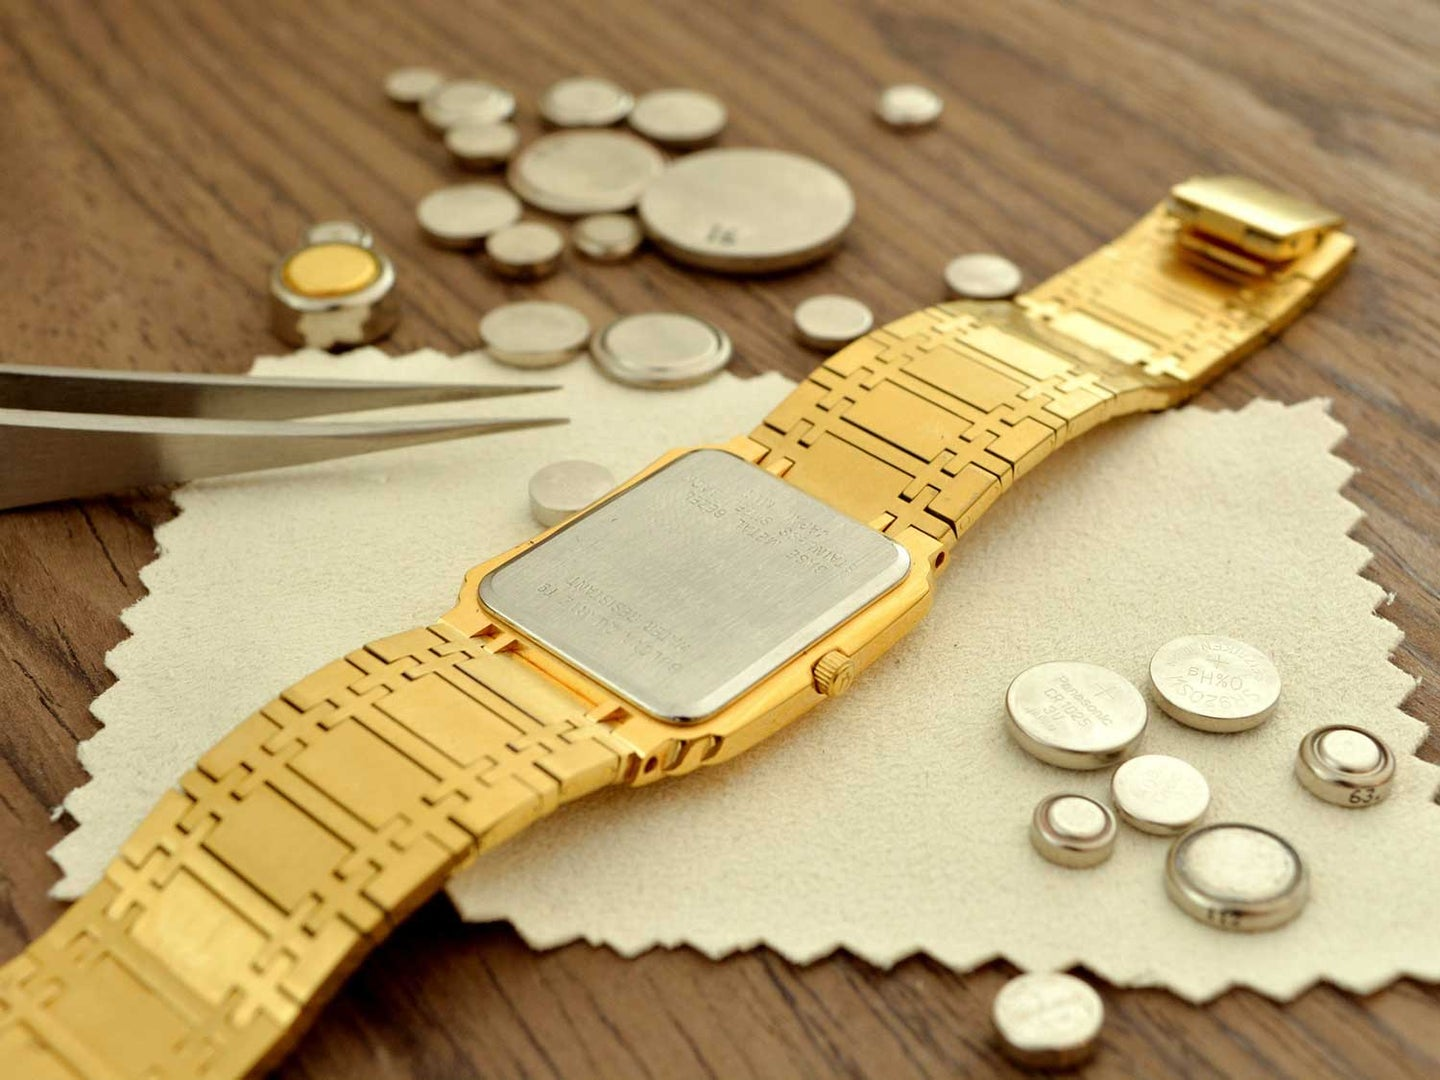 Watch with watch batteries laid on table.